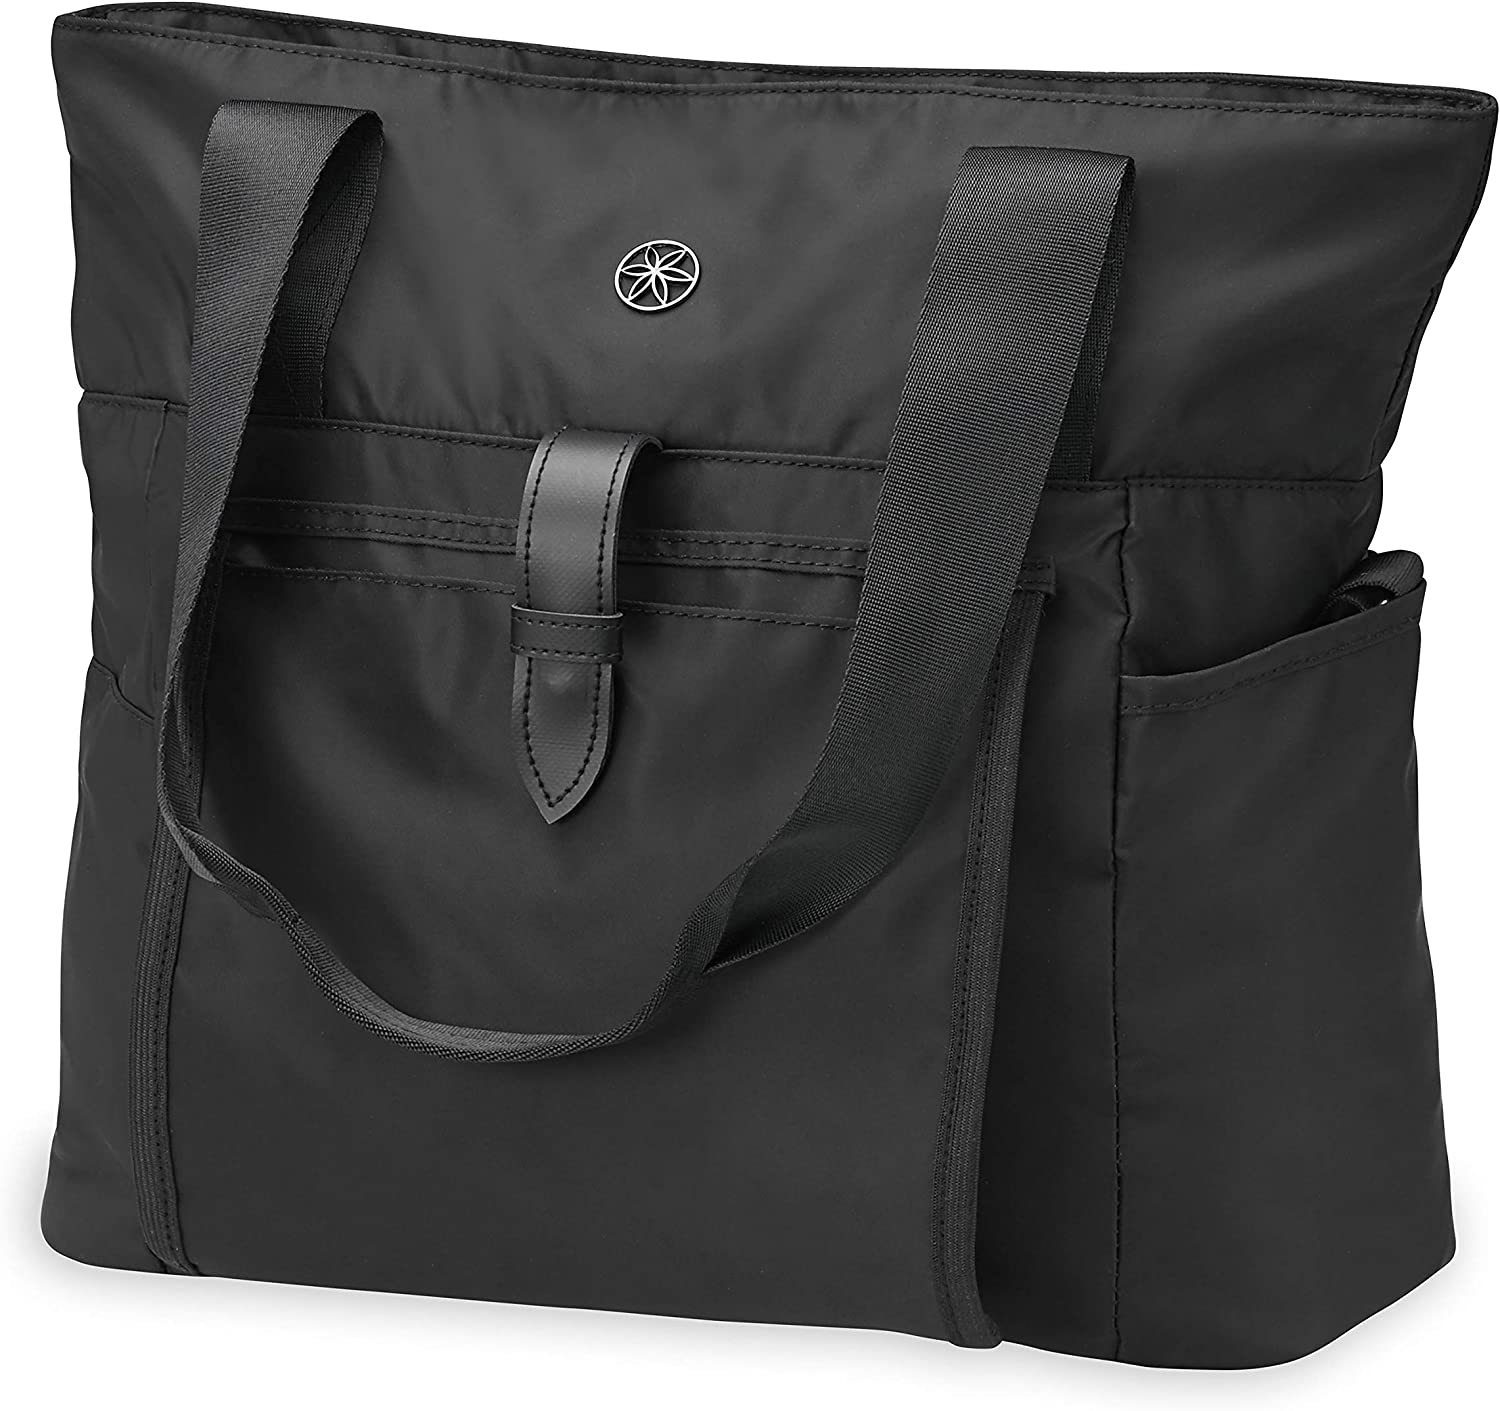 Gaiam Everyday Yoga Mat Bag Tote with Yoga Mat Carrier Sleeve (Fits Most Size Mats)